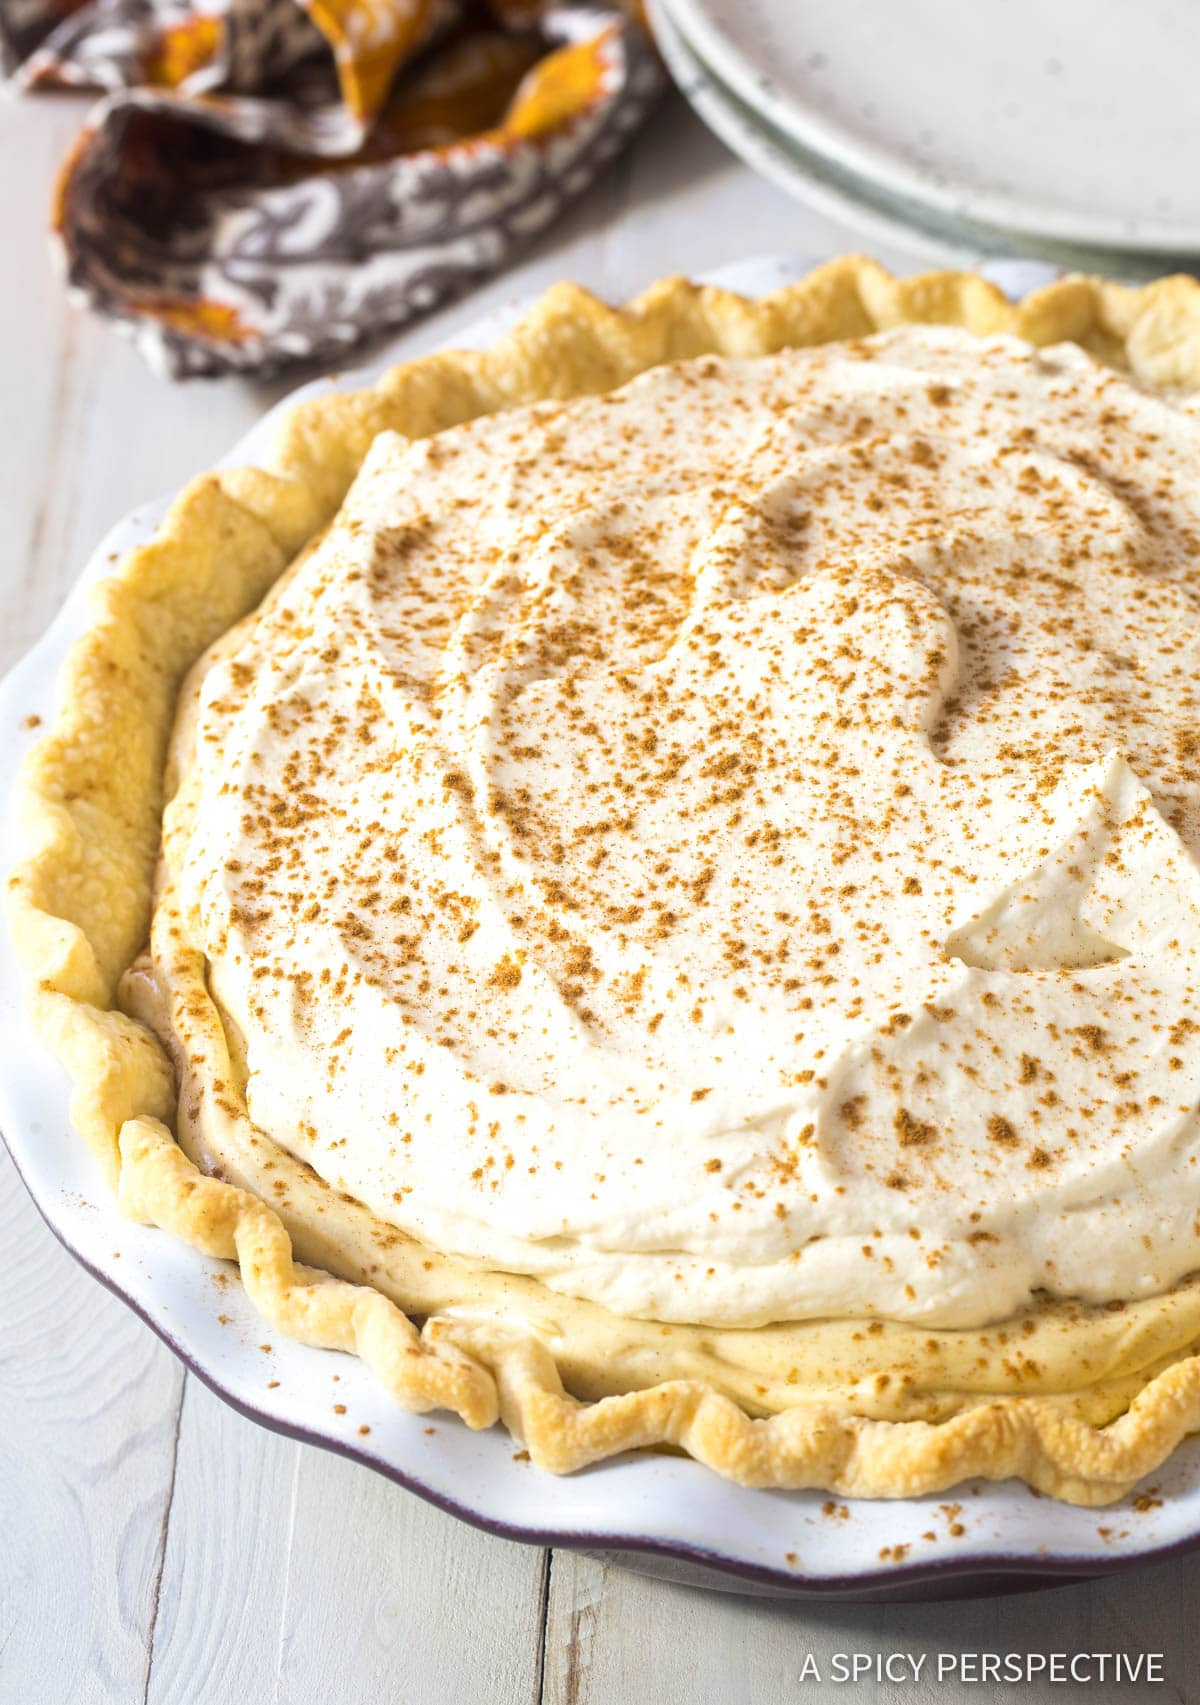 Cinnamon Cream Pie with Brown Sugar Whipped Cream Recipe #ASpicyPerspective #Holiday #Thanksgiving